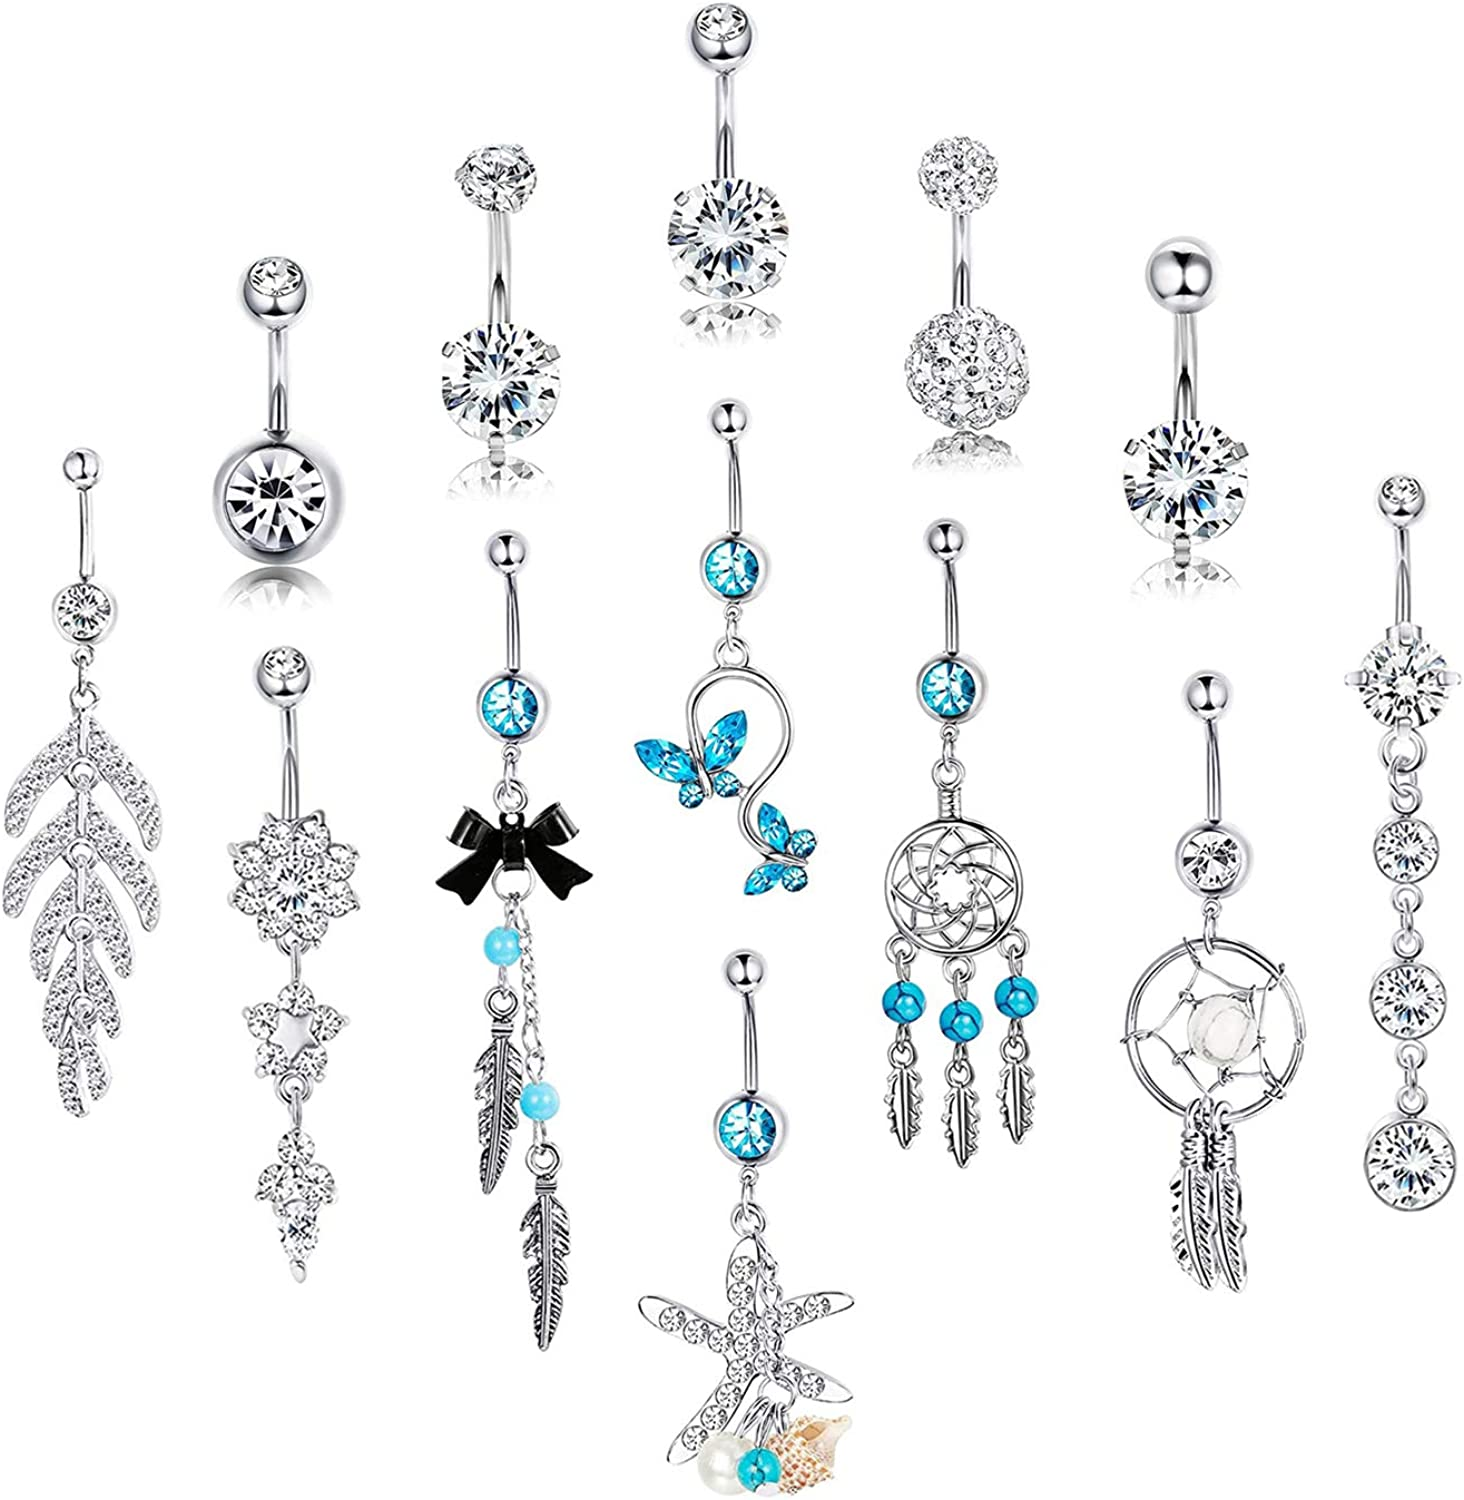 SAILIMUE 13 Pcs 14G Belly Button Rings for Women Cz Curved Navel Barbell Stainless Steel Body Jewelry Piercing Dangle Belly Button Rings